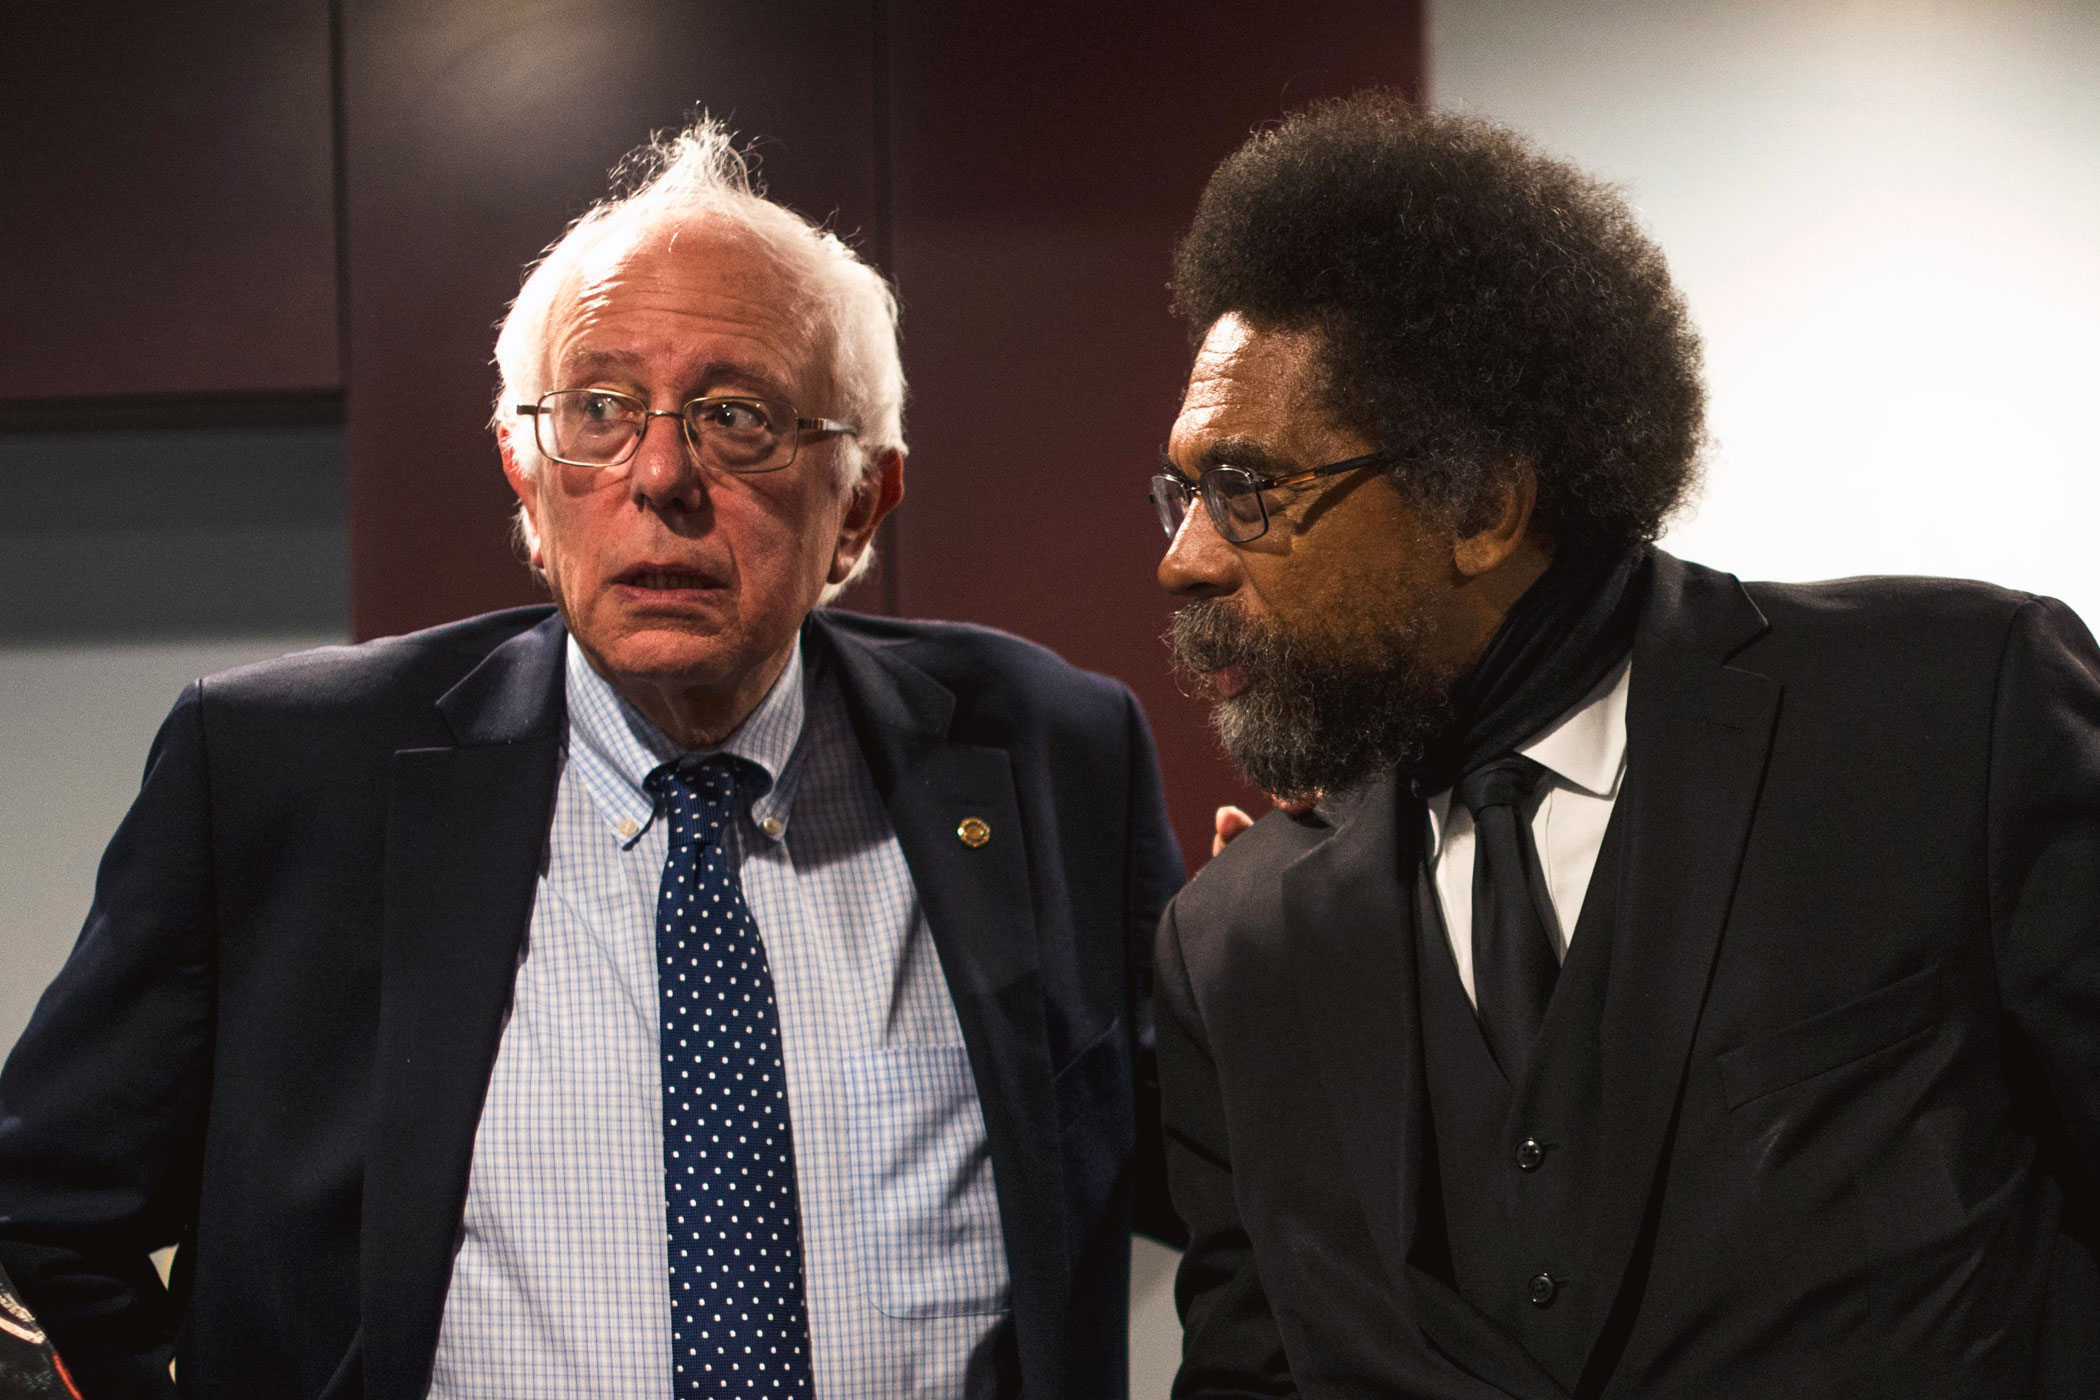 Philosopher and academic Cornel West, right, endorses Vermont Senator Bernie Sanders (I-VT).